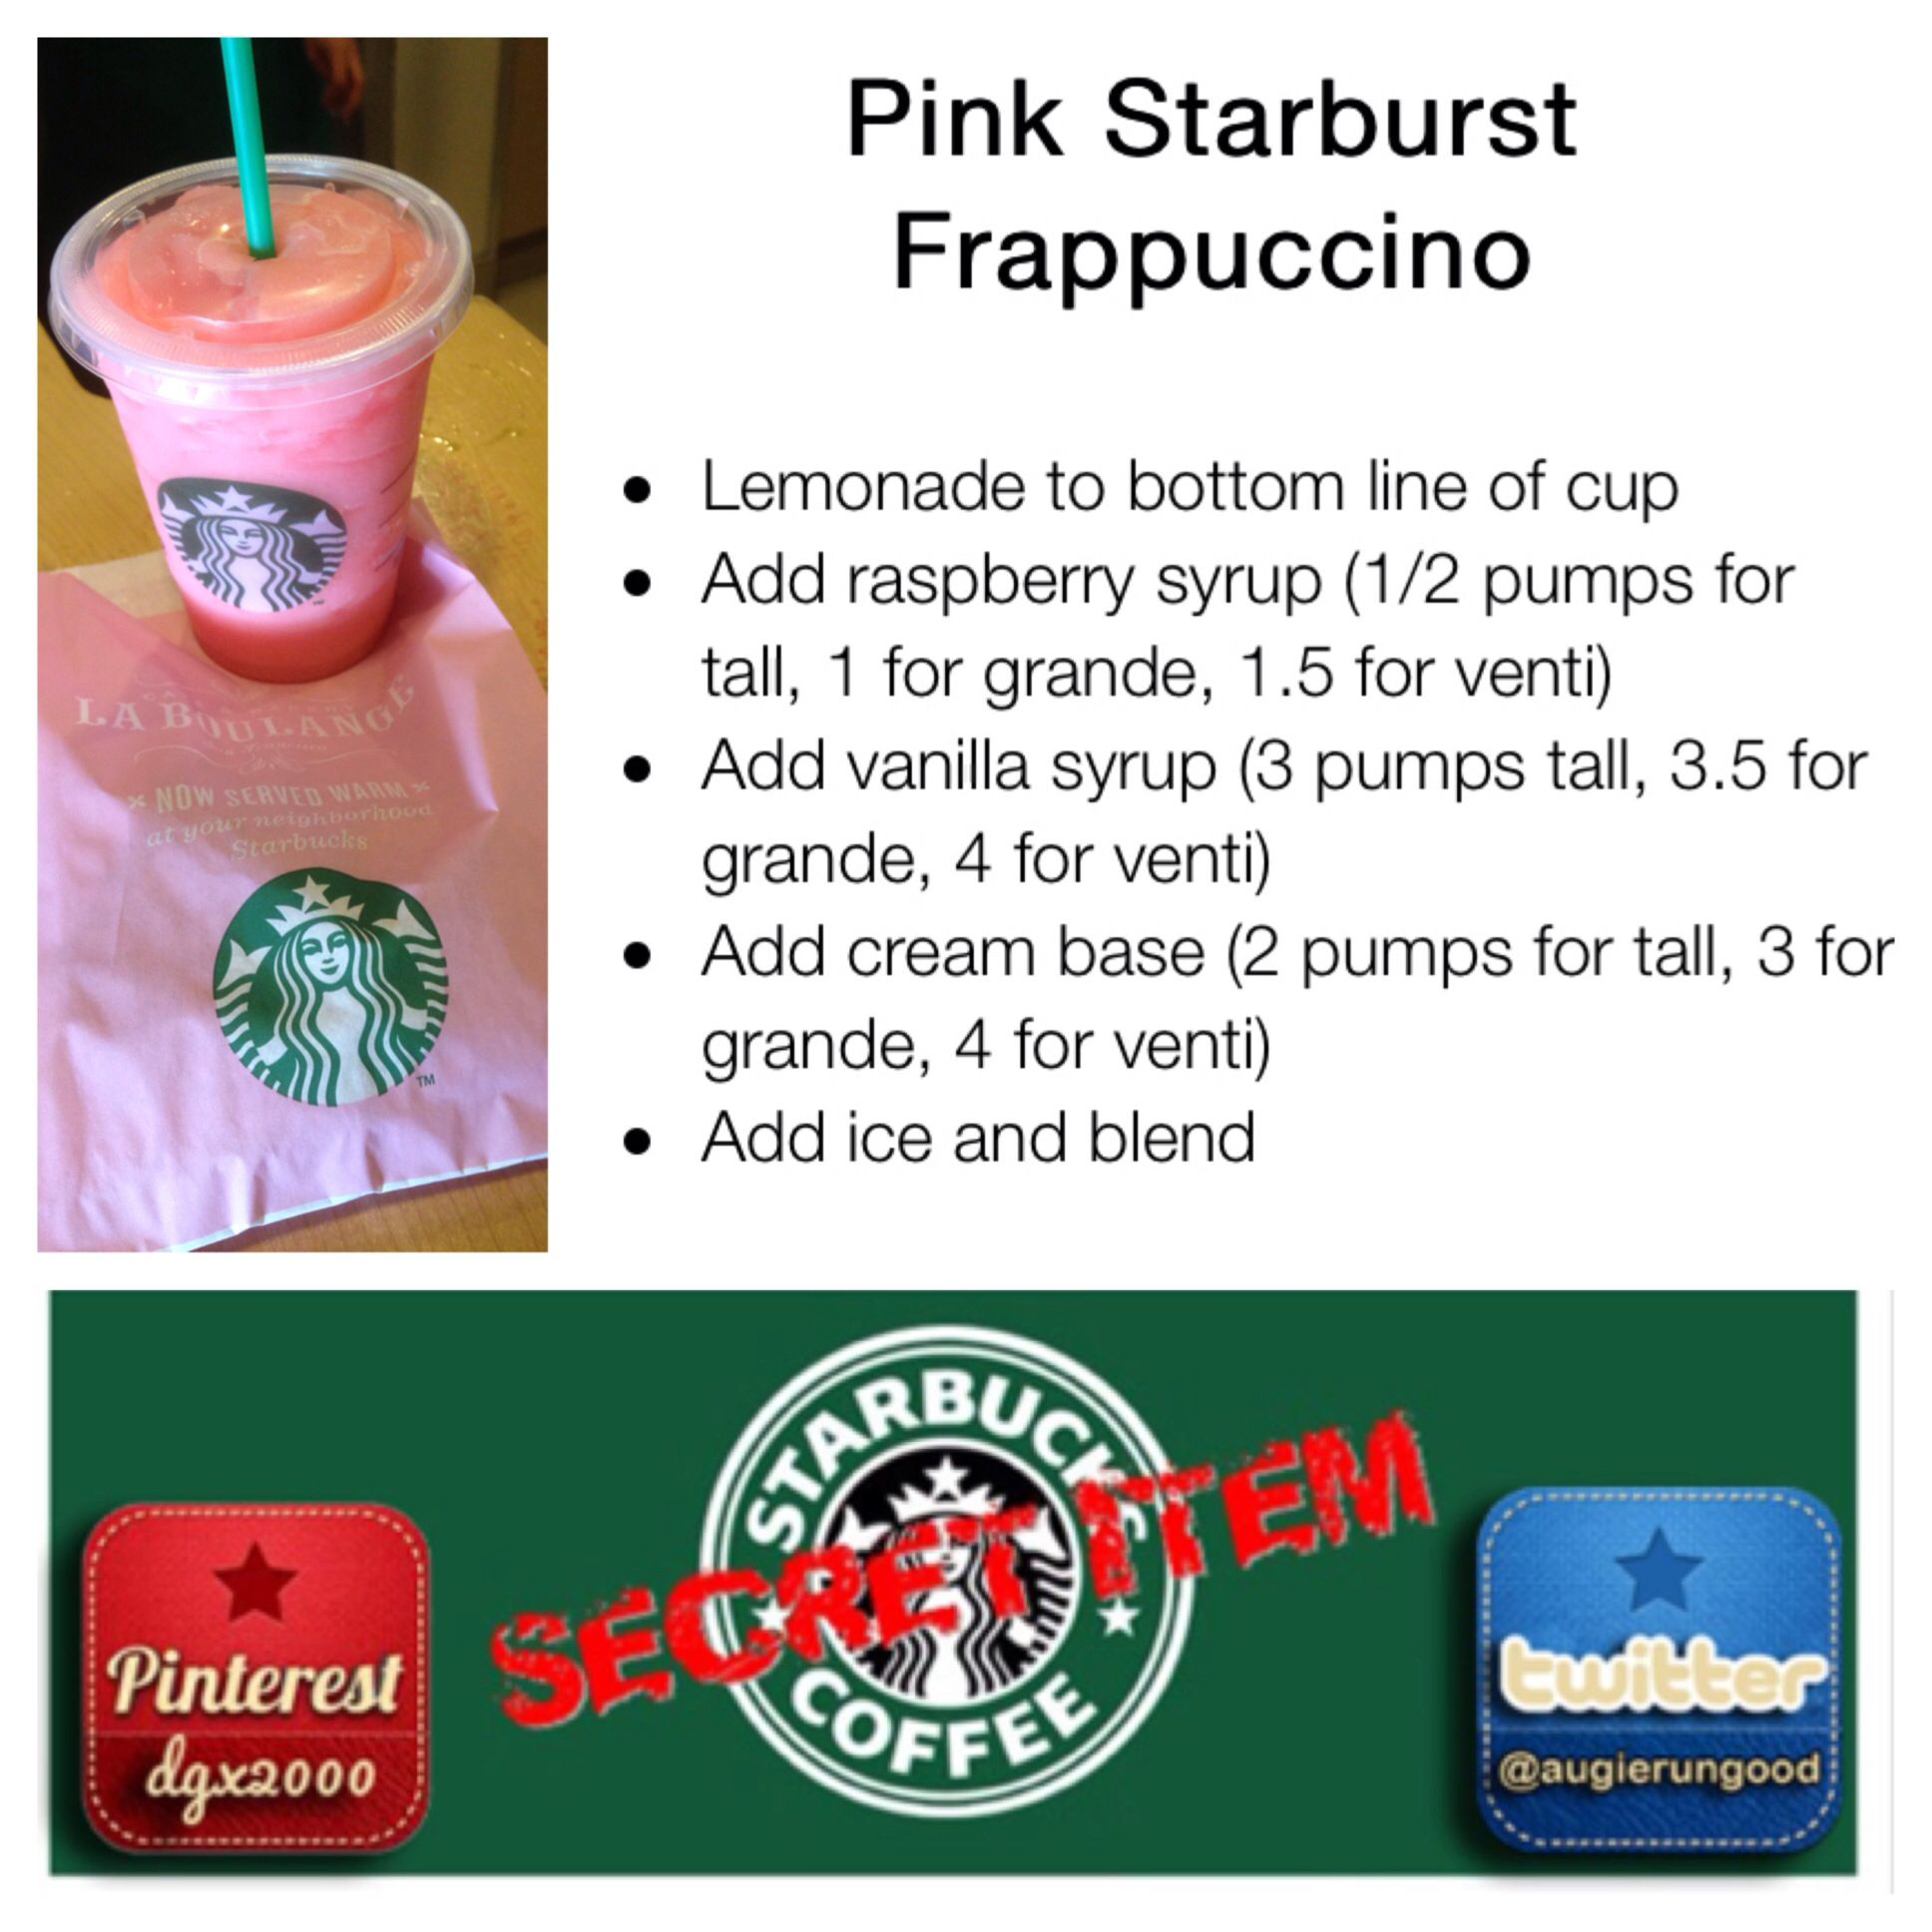 Starbucks Secret Menu Item - The Pink #Starburst. All I have to say ...